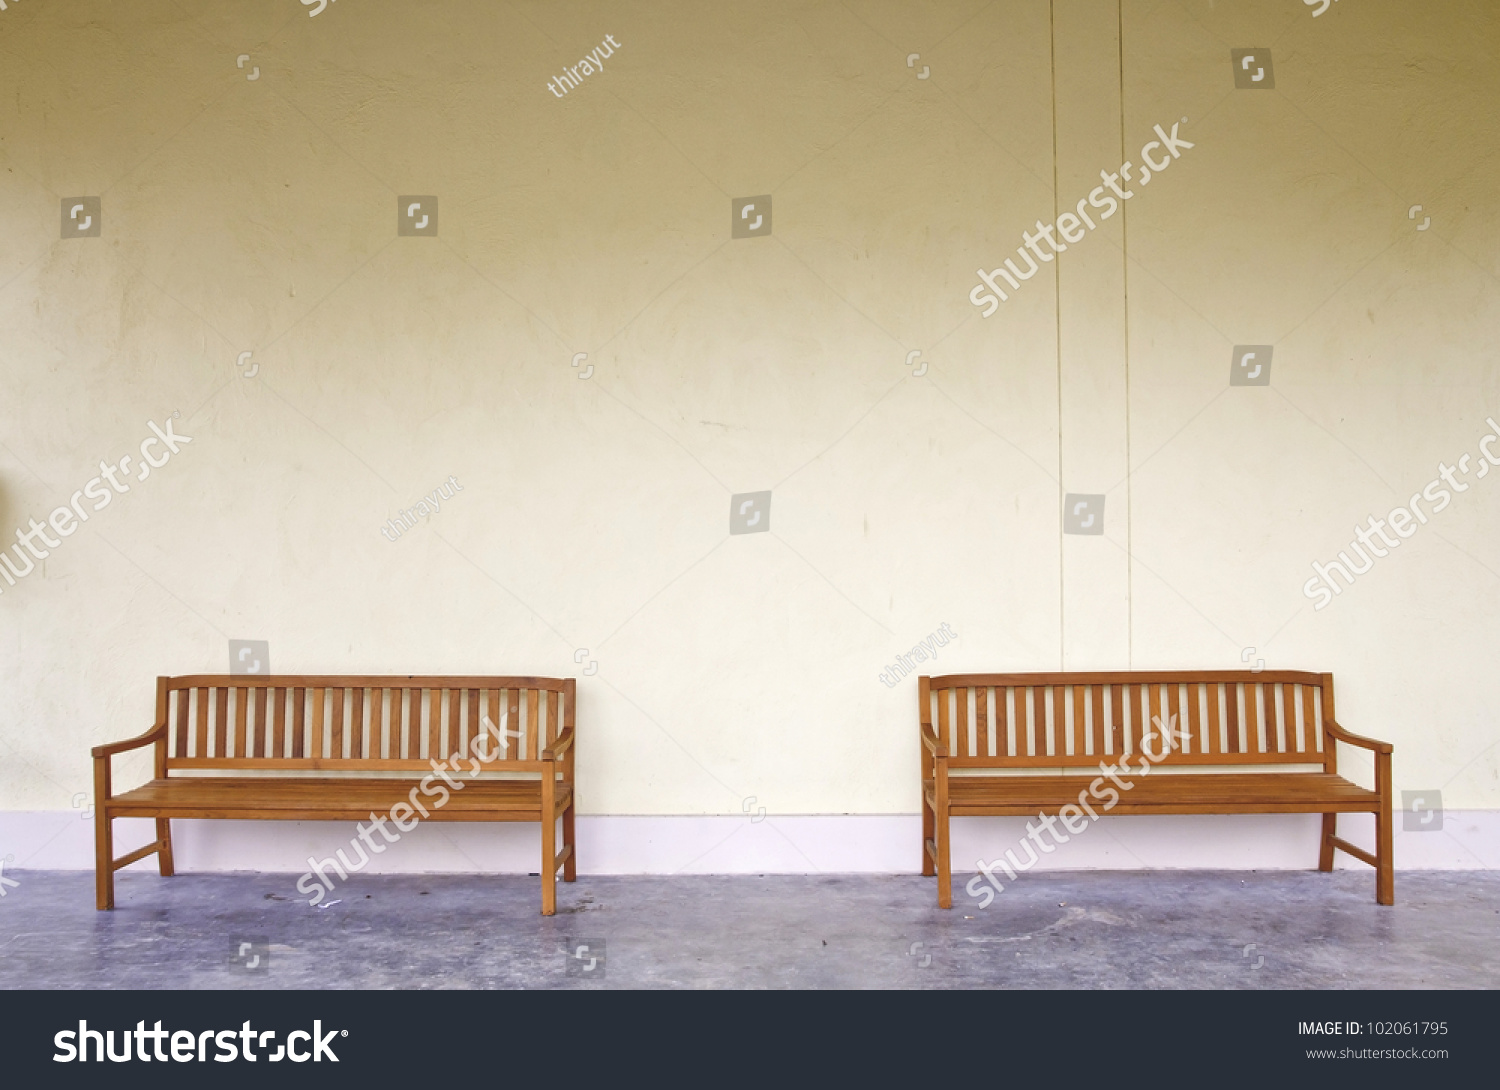 Unique Wood Bench Against Blank Wall And Green Trash Stock